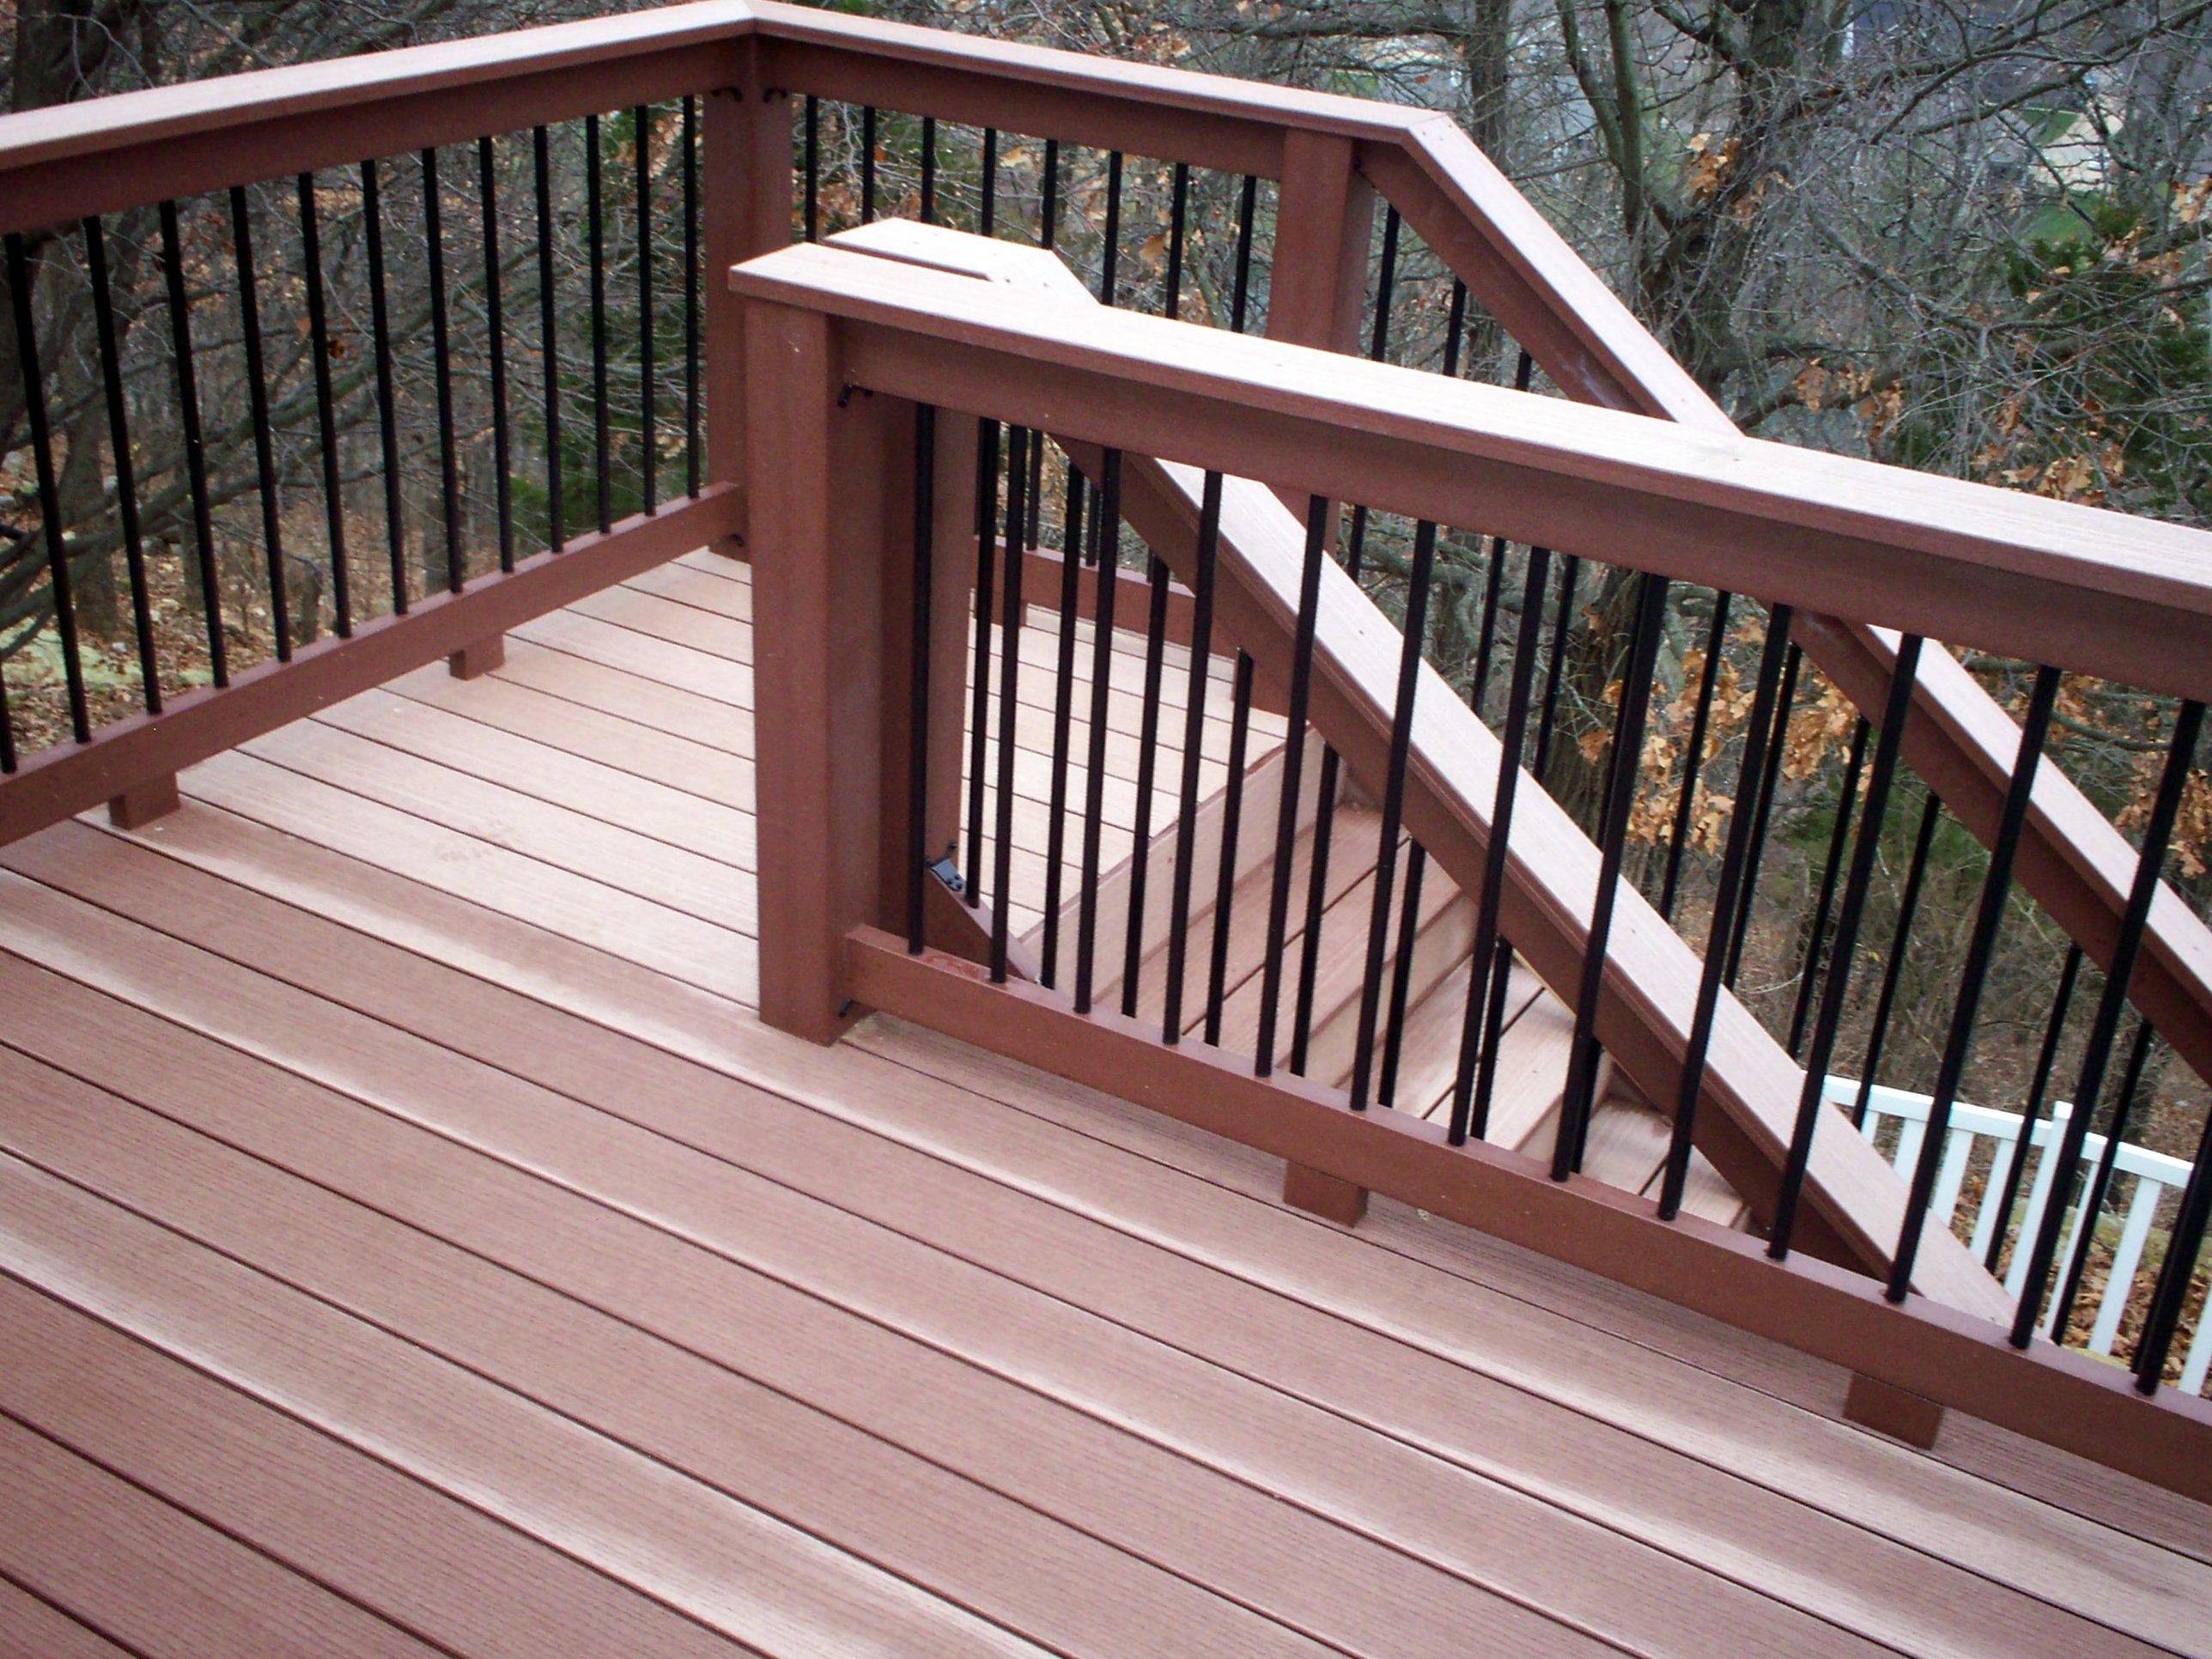 St louis mo trends for outdoor living in 2013 st for Composite deck railing